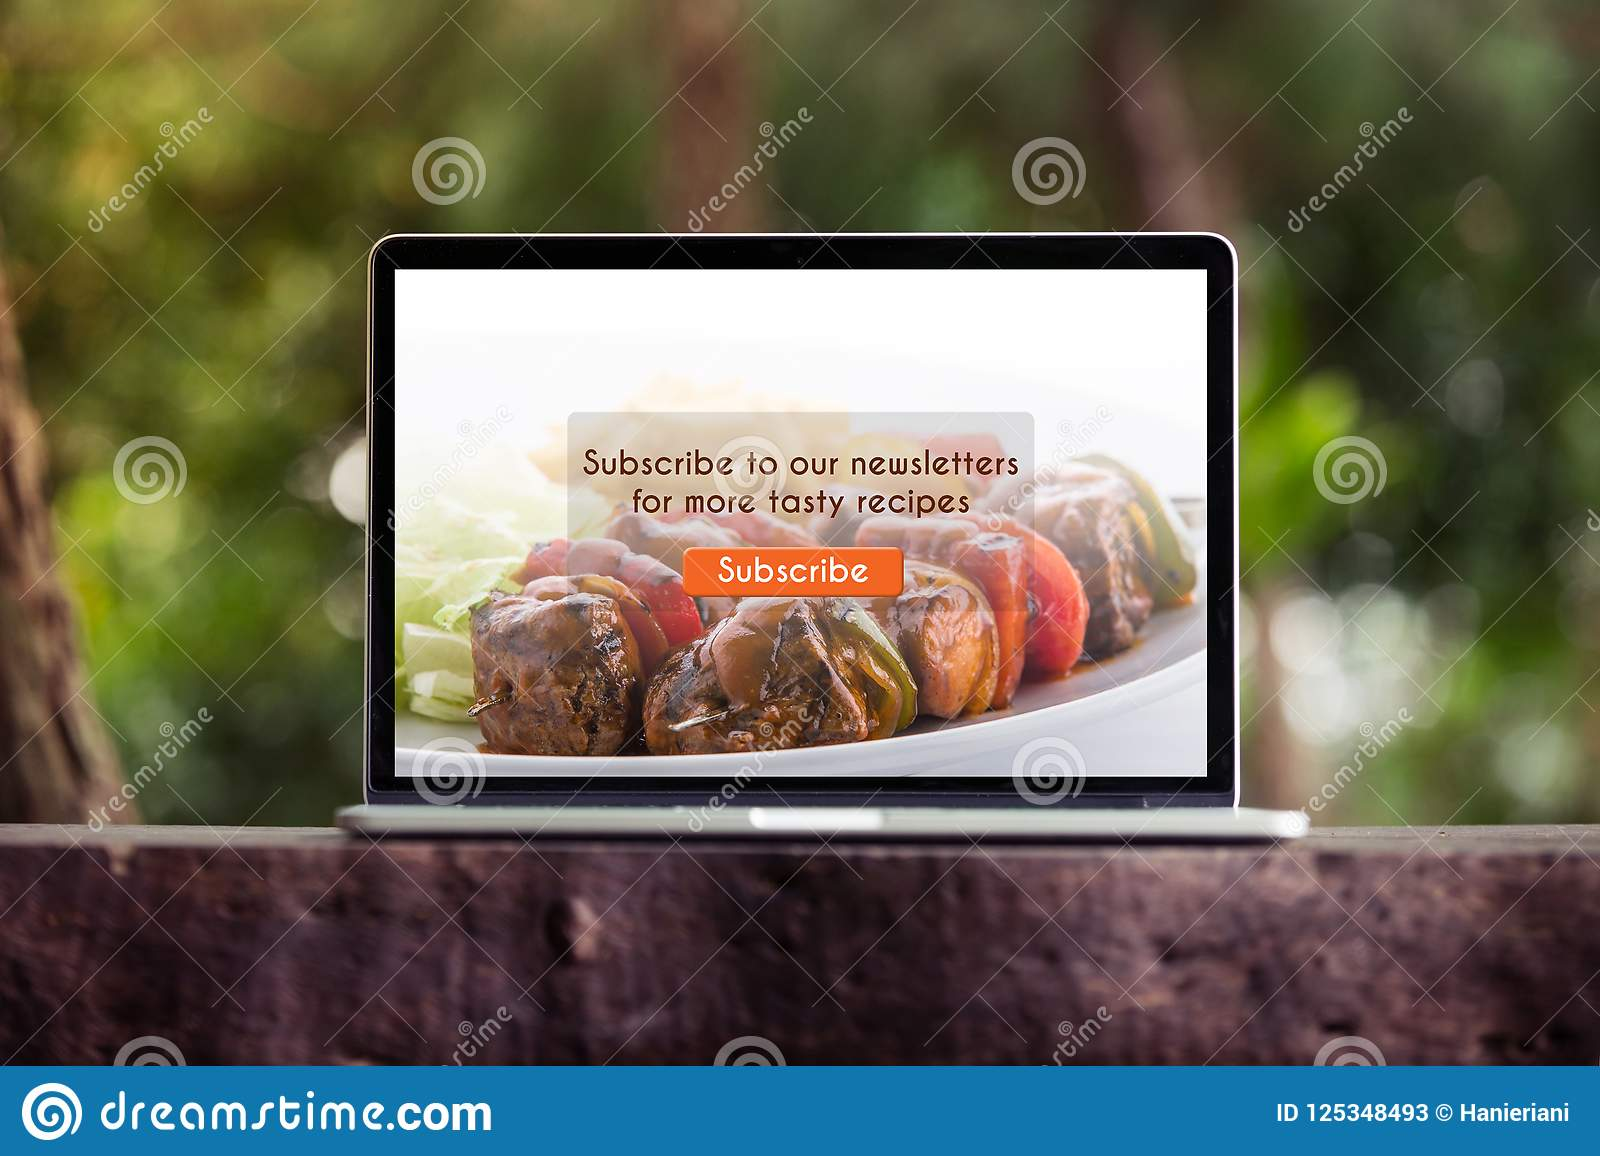 Food blog subscribtion on laptop / computer screen concept